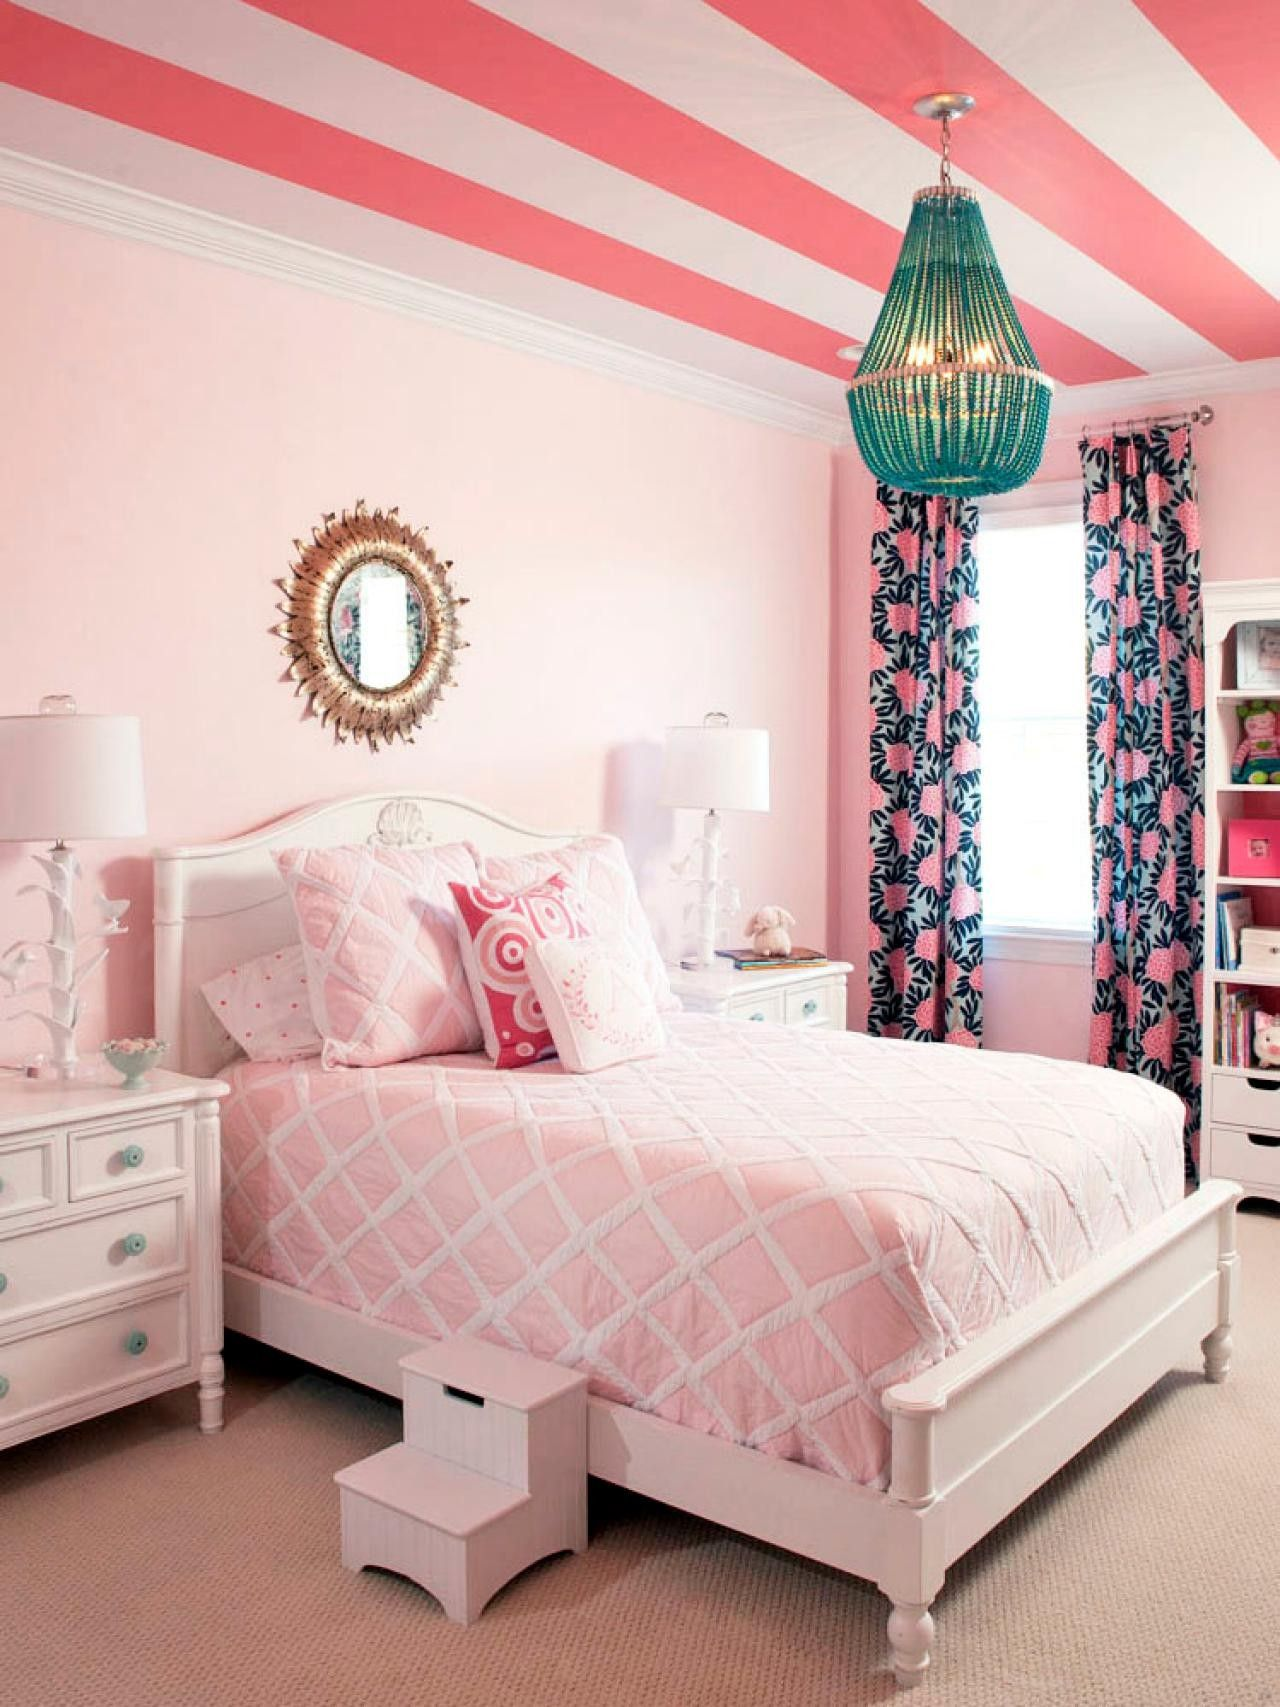 decorating ideas for a glamorous bedroom inspirational decorating rh pinterest com